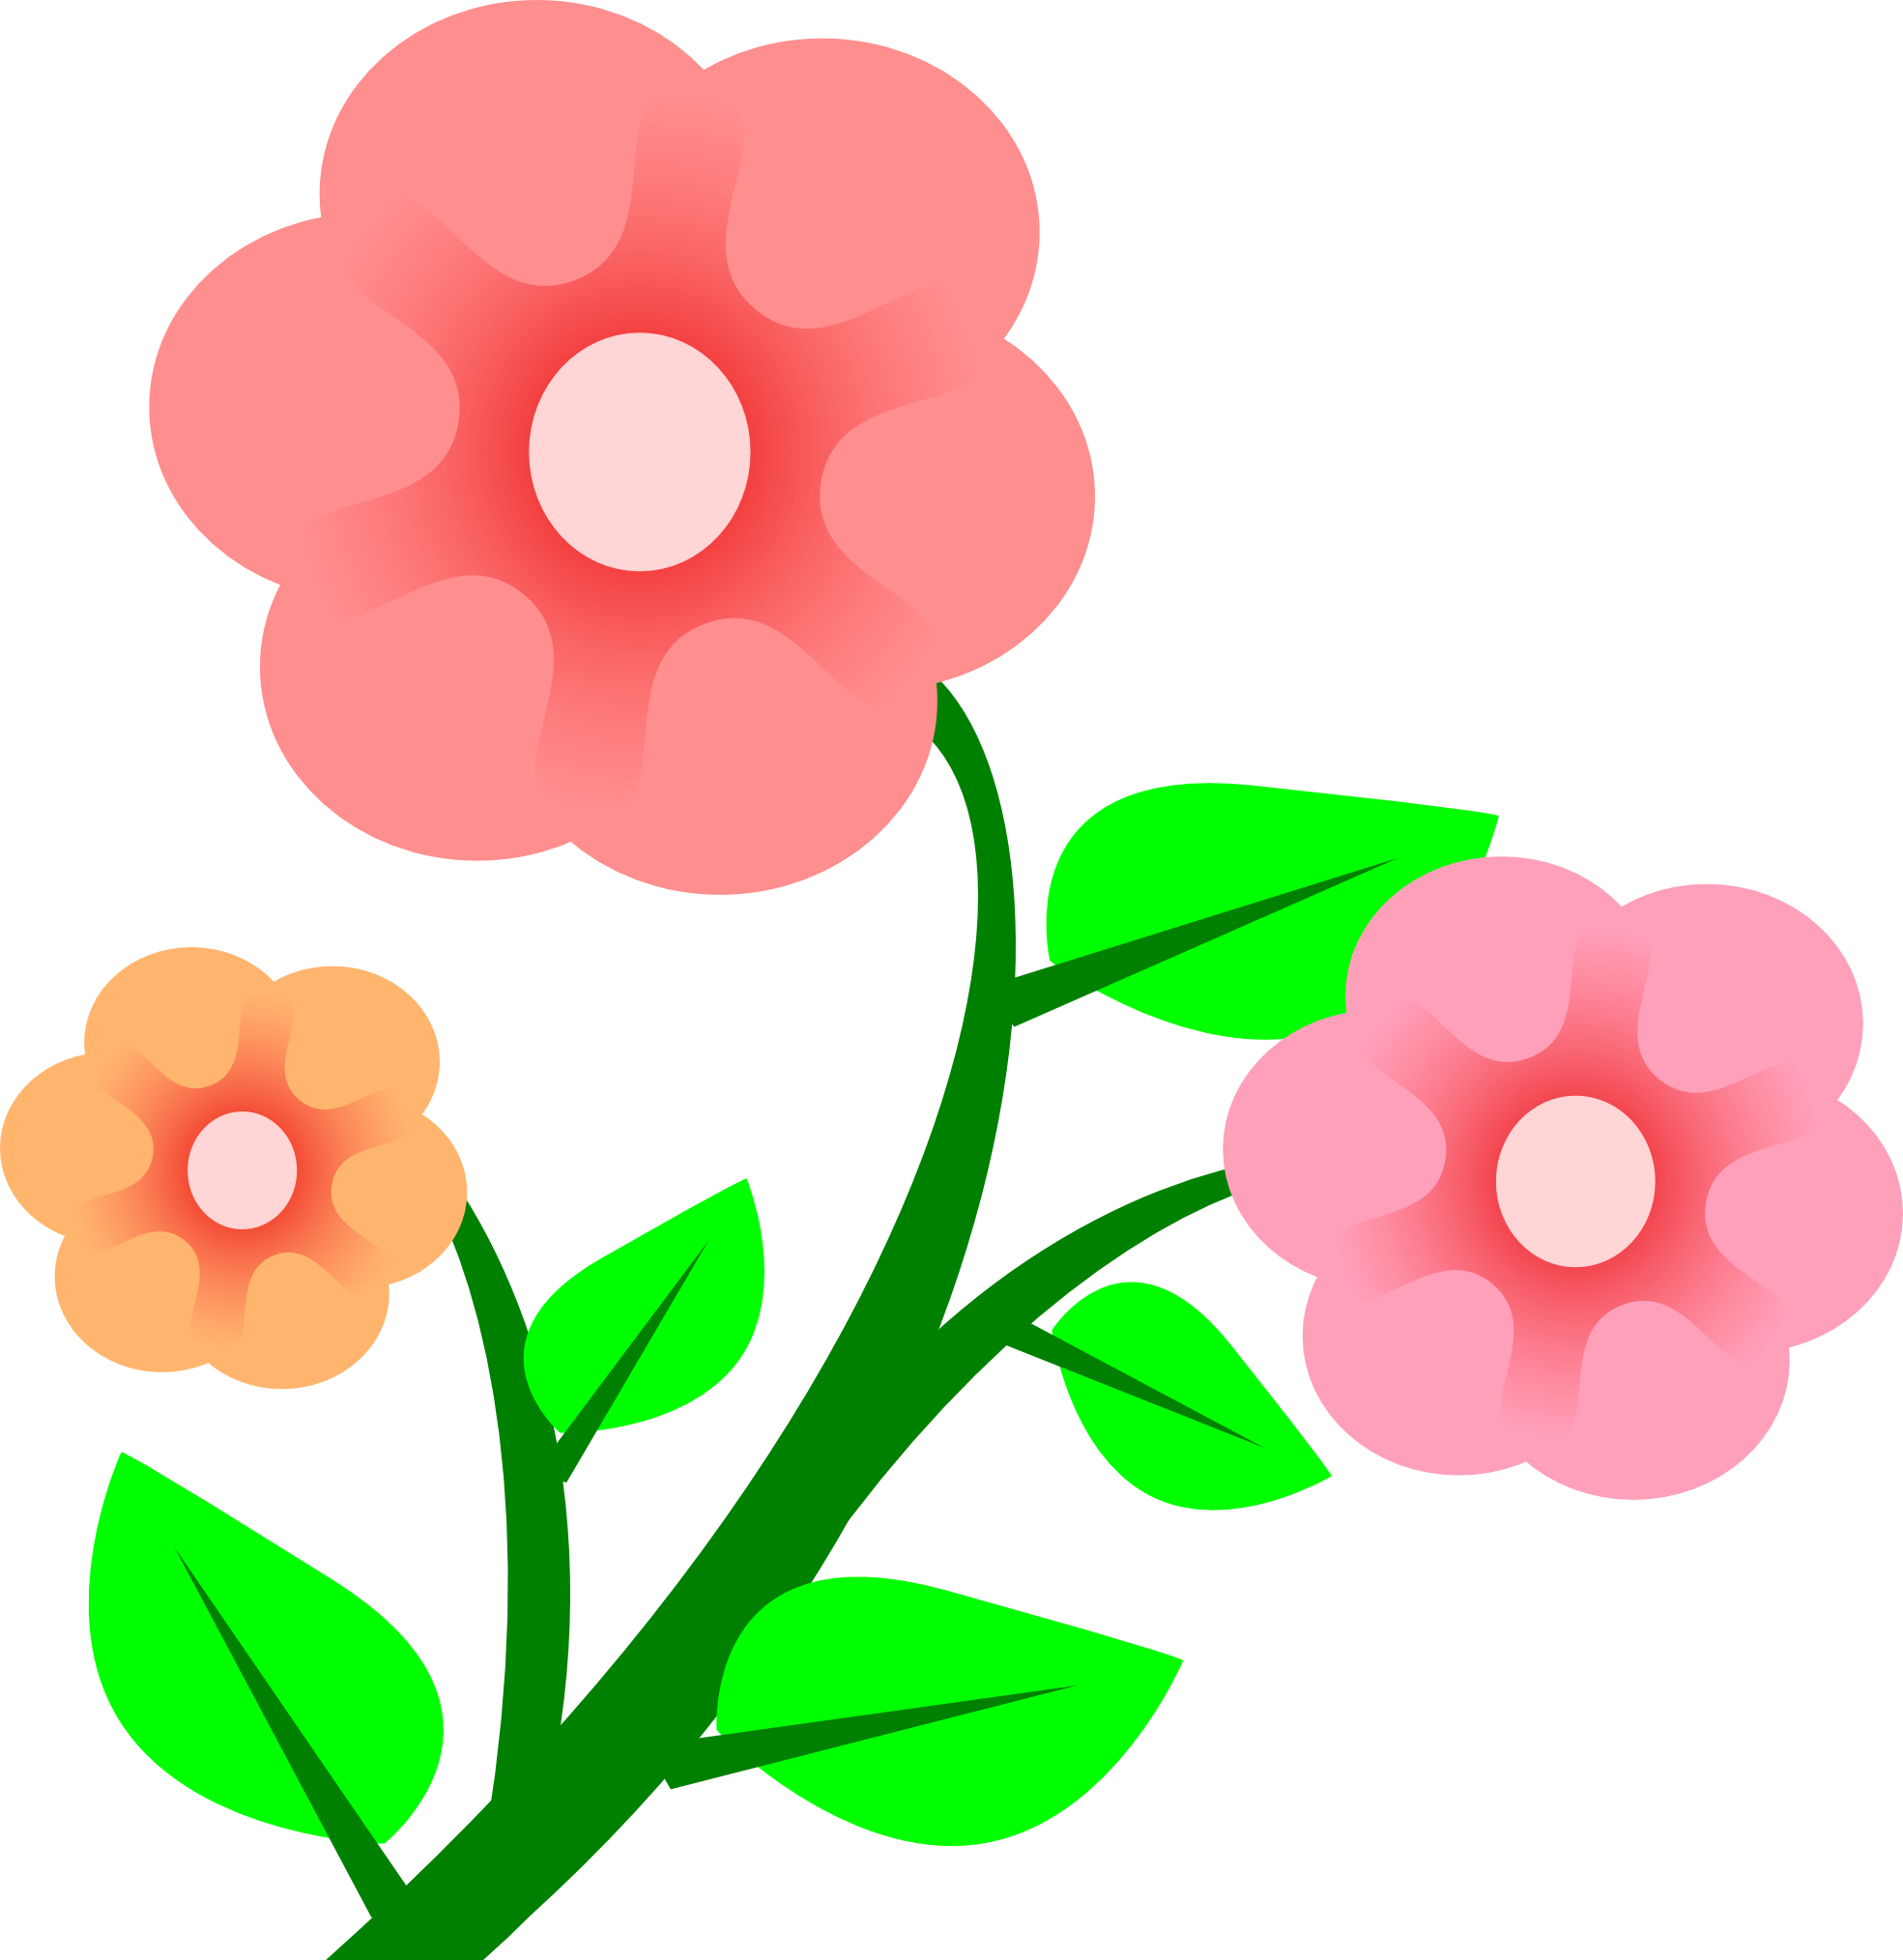 Short flower clipart image Flower Free content Spring Drawing Clip art - Flowers Graphics 1969 ... image